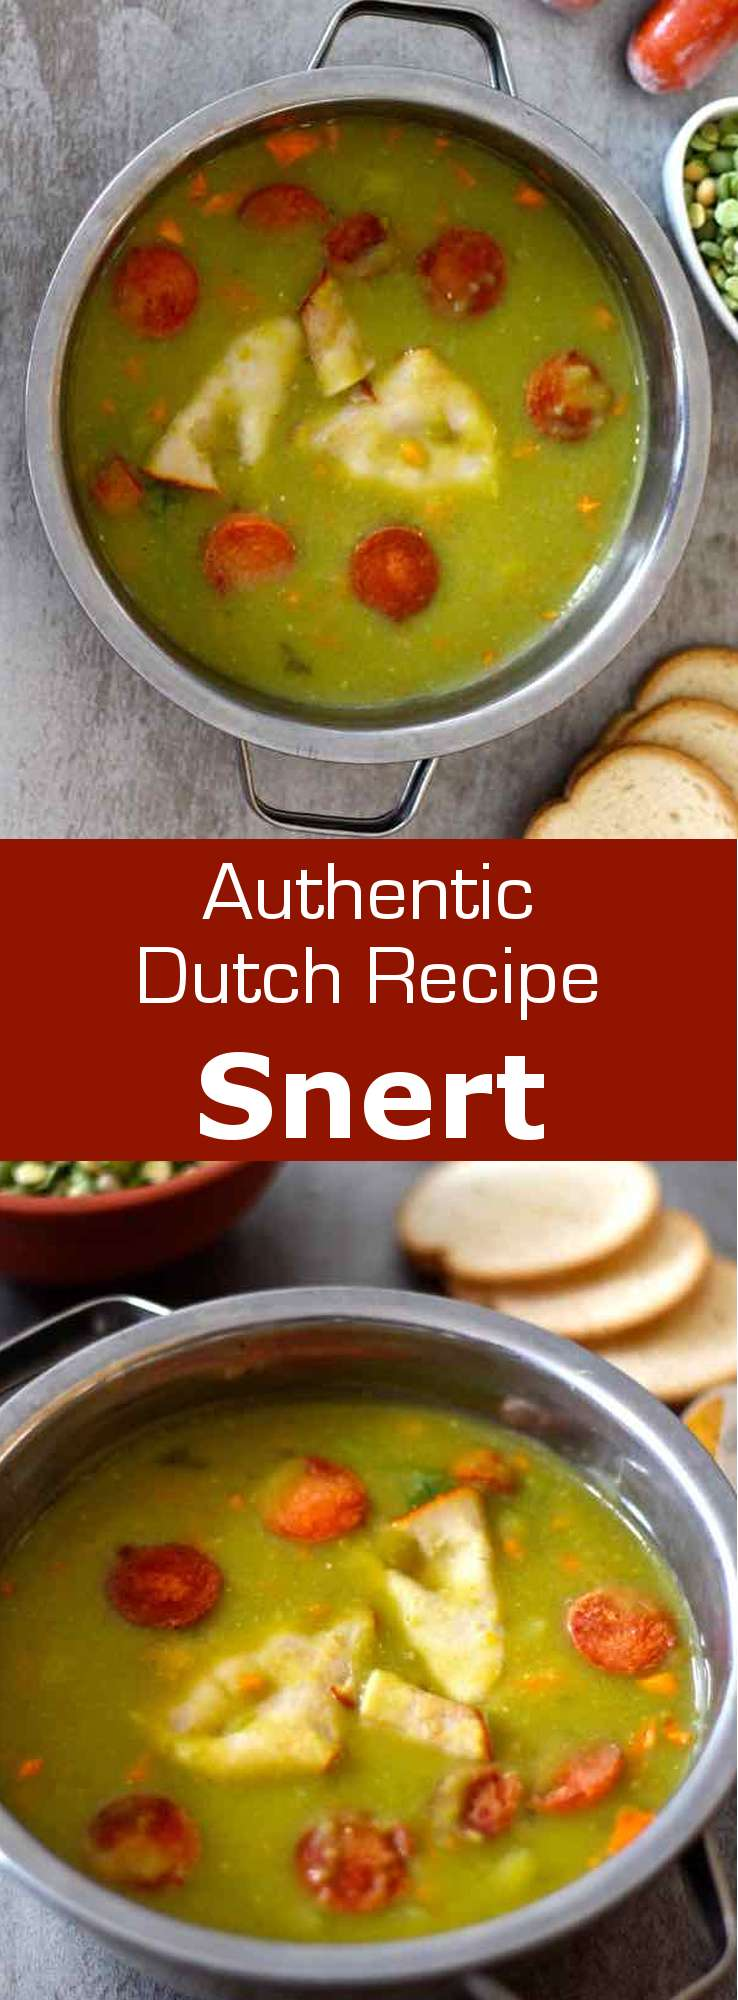 Snert (also known as Ertwensoep) is a typical Dutch winter thick soup made with split peas, potatoes, vegetables as well as sausage and bacon. #soup #Dutch #Netherlands #196flavors